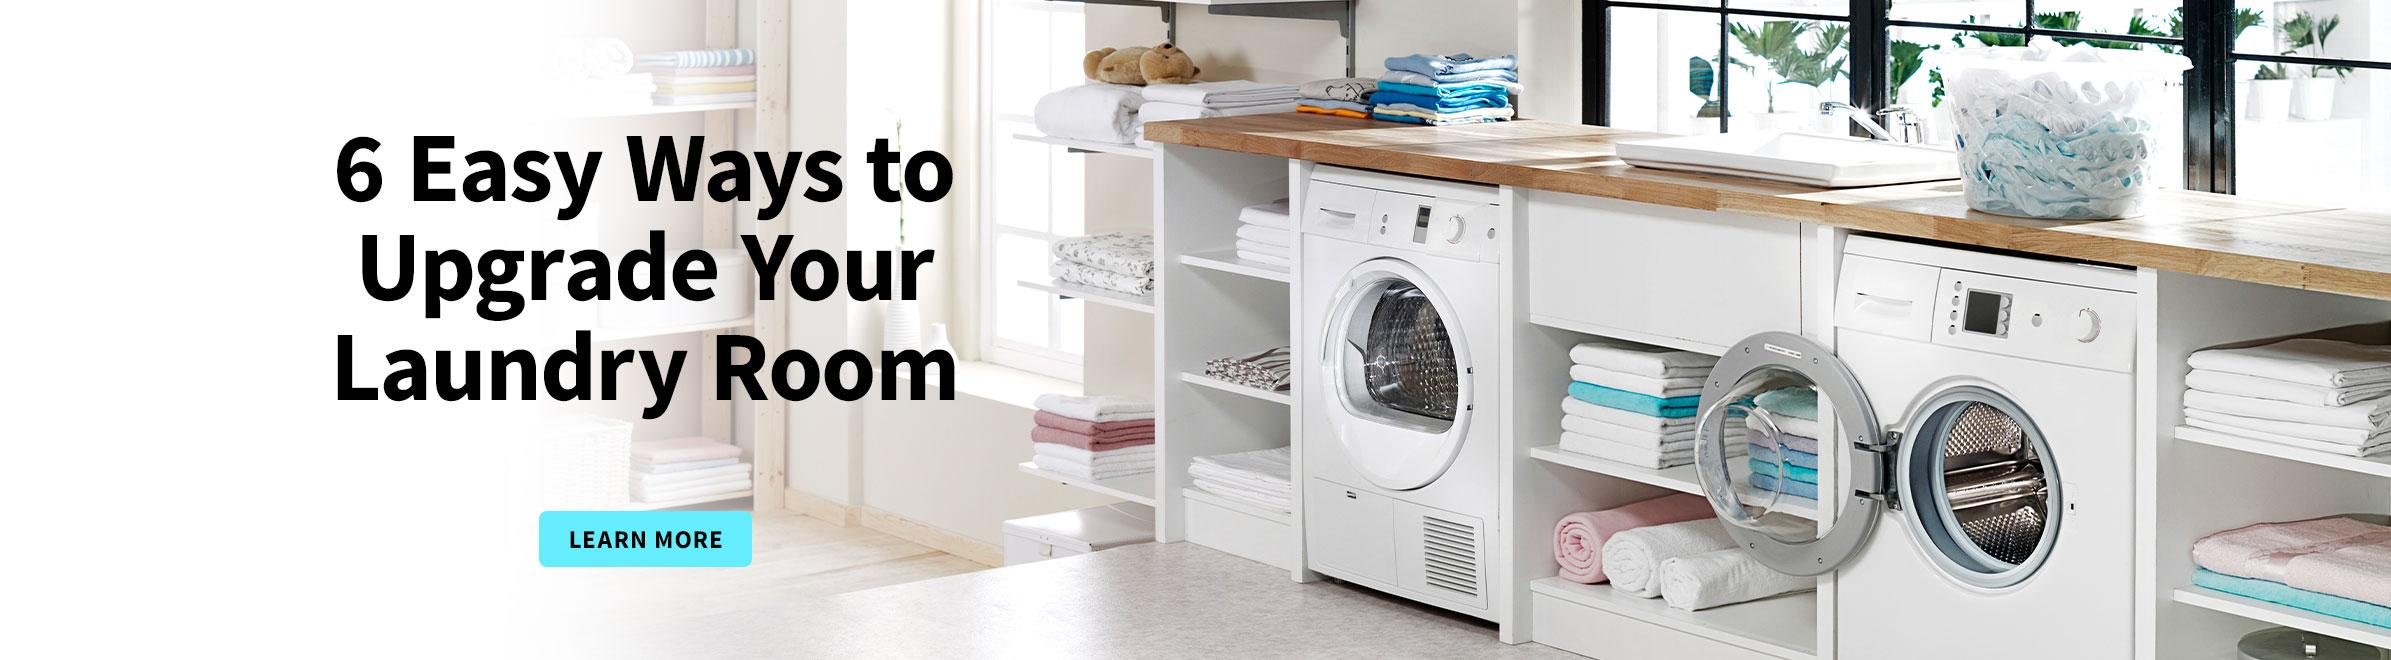 6 Easy Ways to Update Your Laundry Room